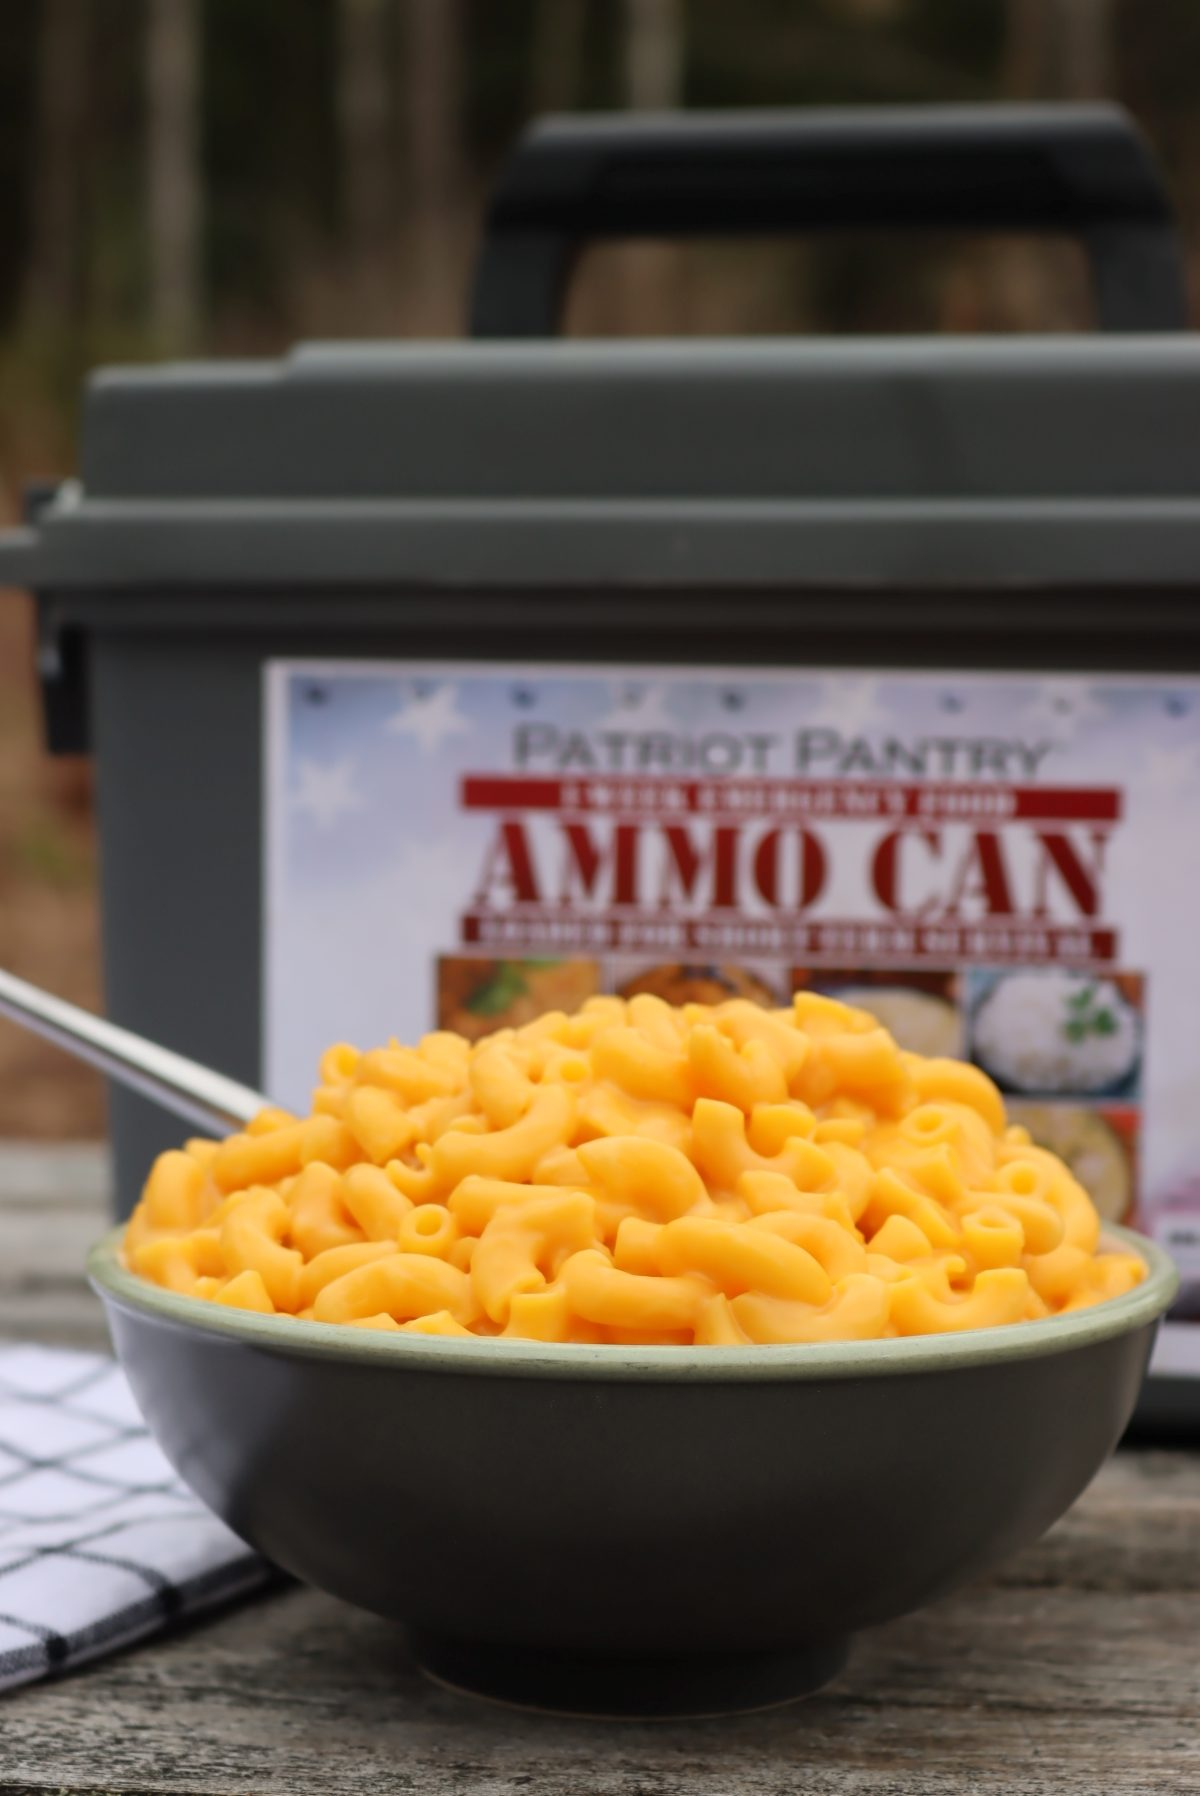 My Patriot Pantry Mac and Cheese